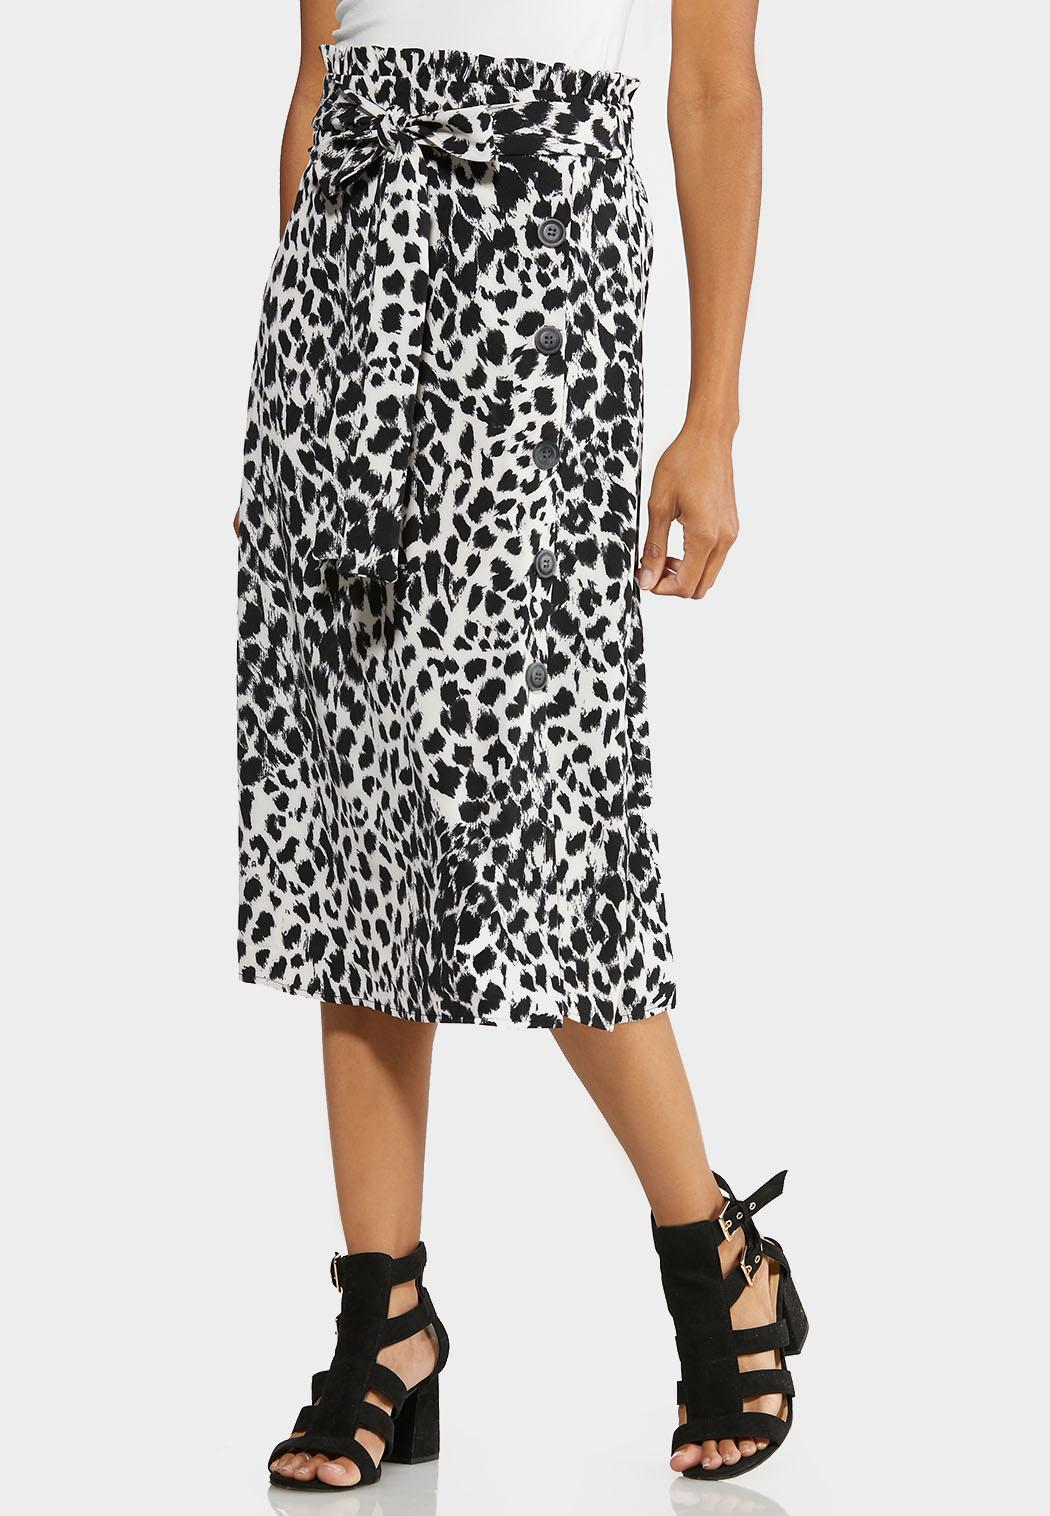 Black White Leopard Midi Skirt